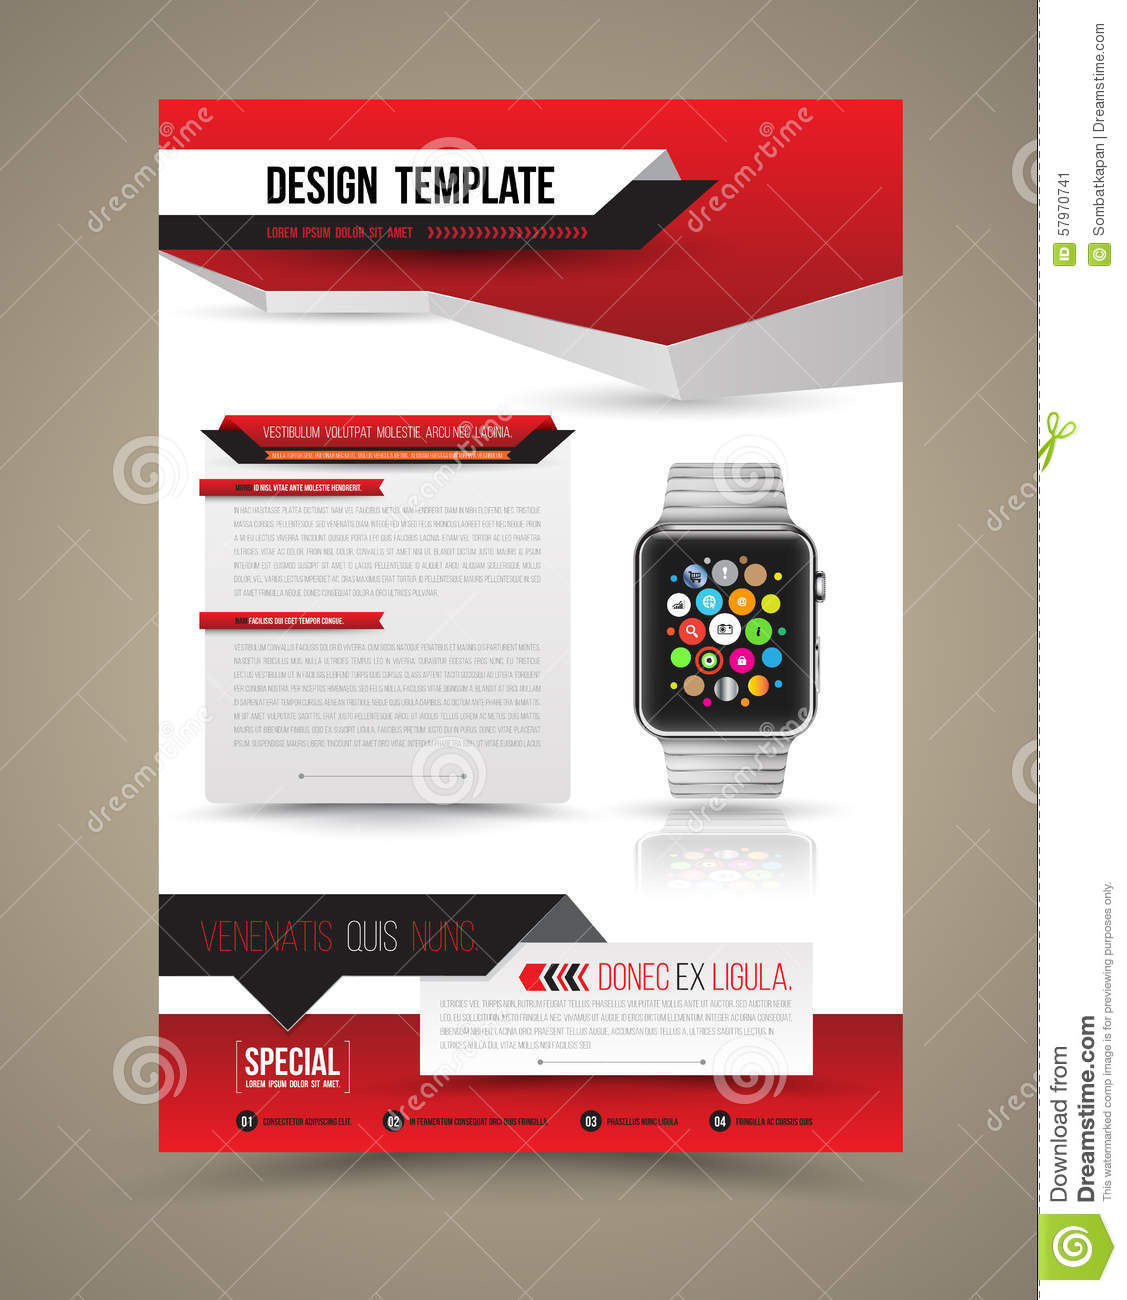 abstract design vector template layout with smart watch